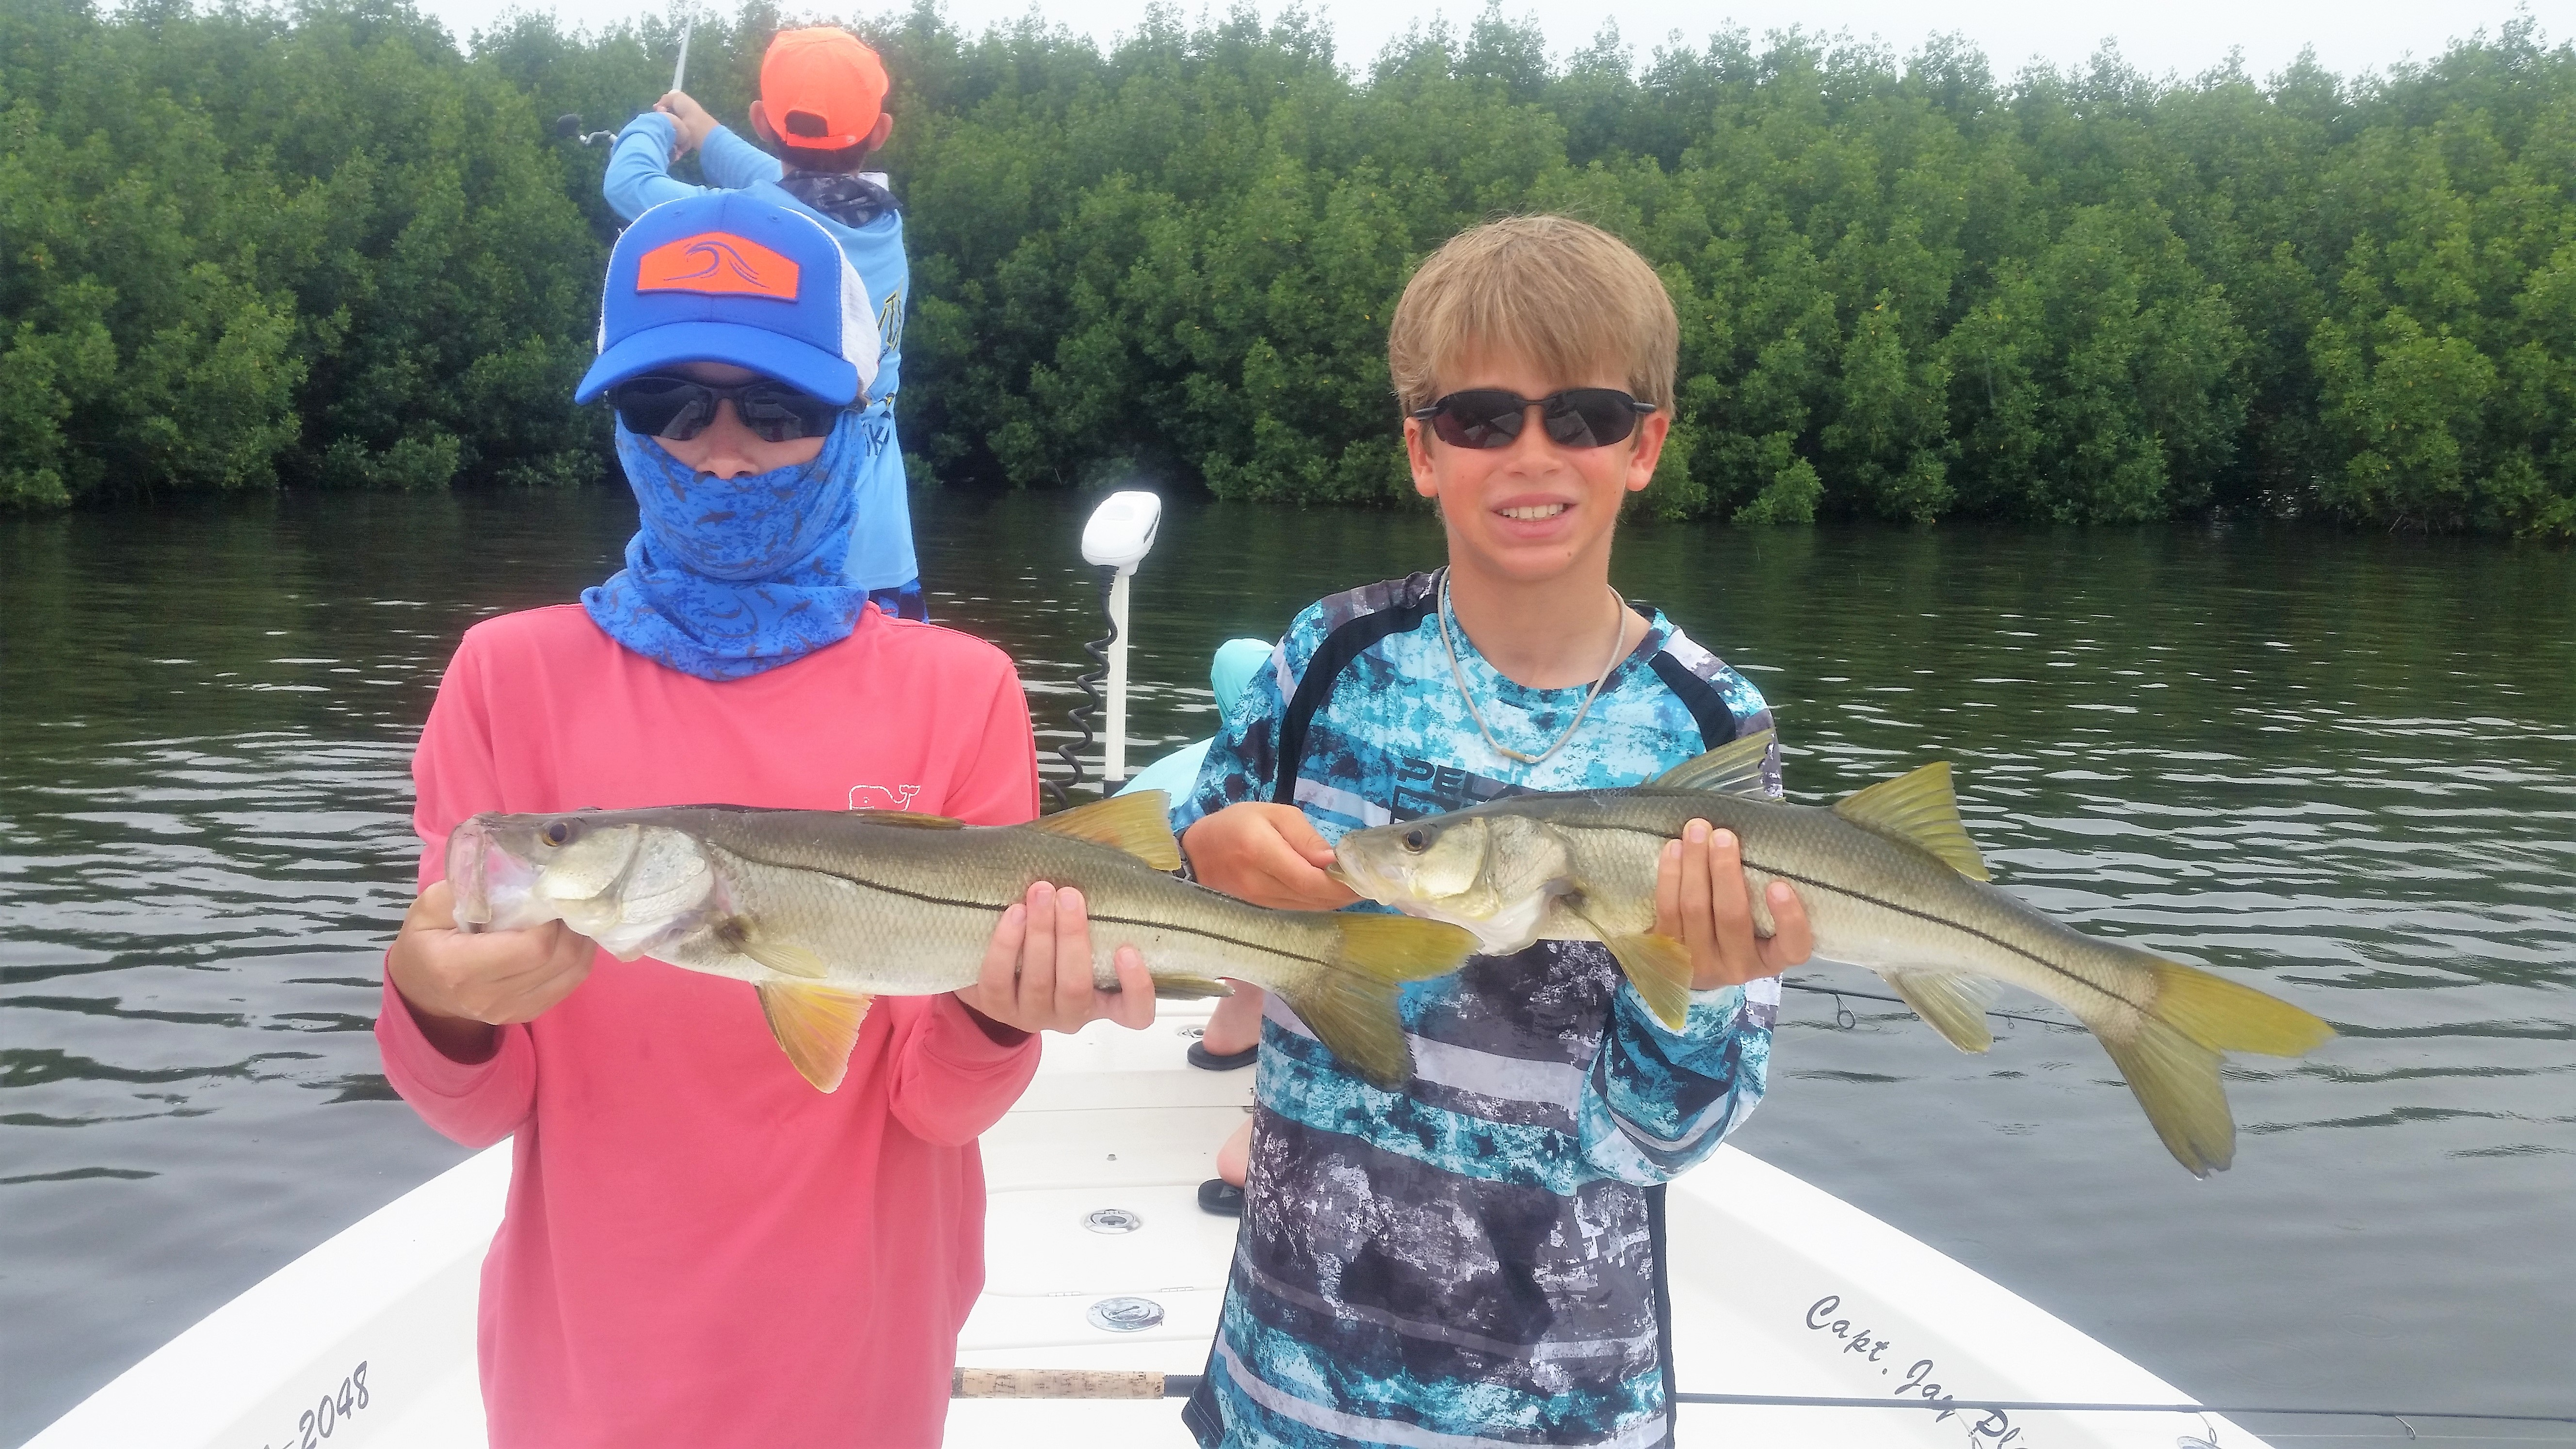 Tampa fishing charters stealth fishing chartes tampa for Fishing camps for kids